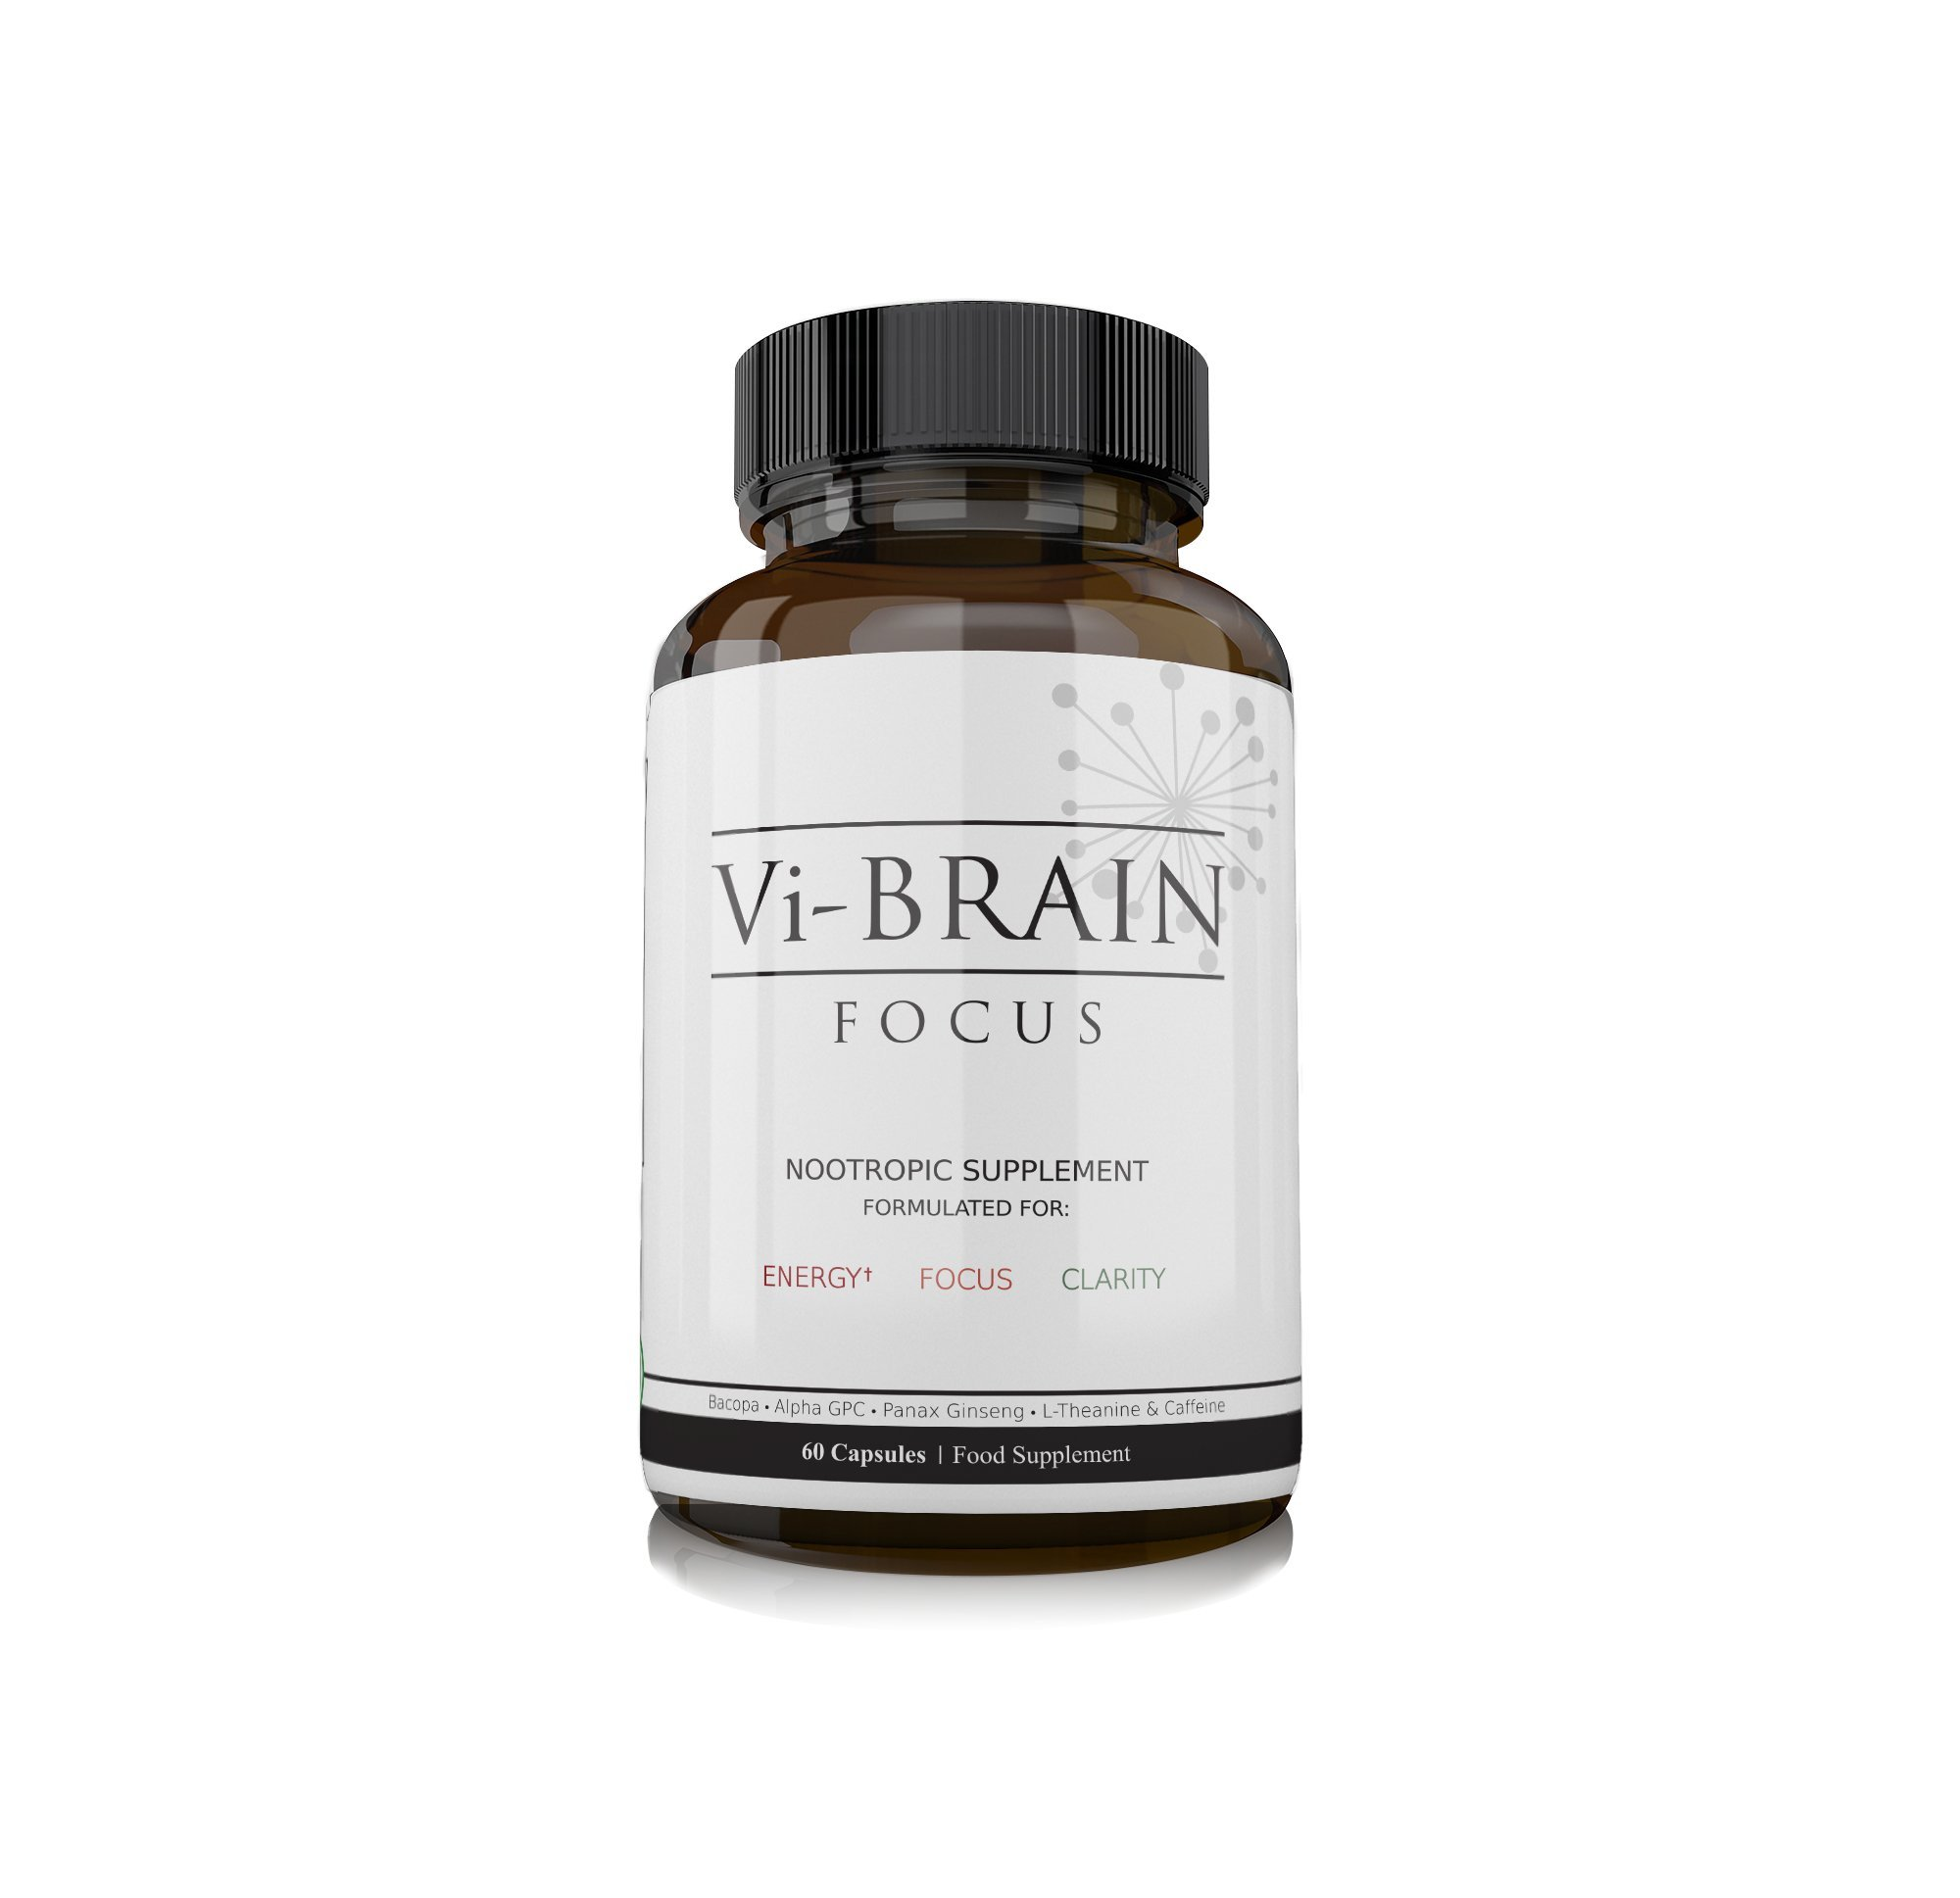 Vi-Brain Nootropic Focus Supplement - Daily Brain Food Providing Mental Stimulation and Stamina for Busy Professionals, Students & Athletes - Concentration Pills Nootropics Supplement - 30 Day Supply